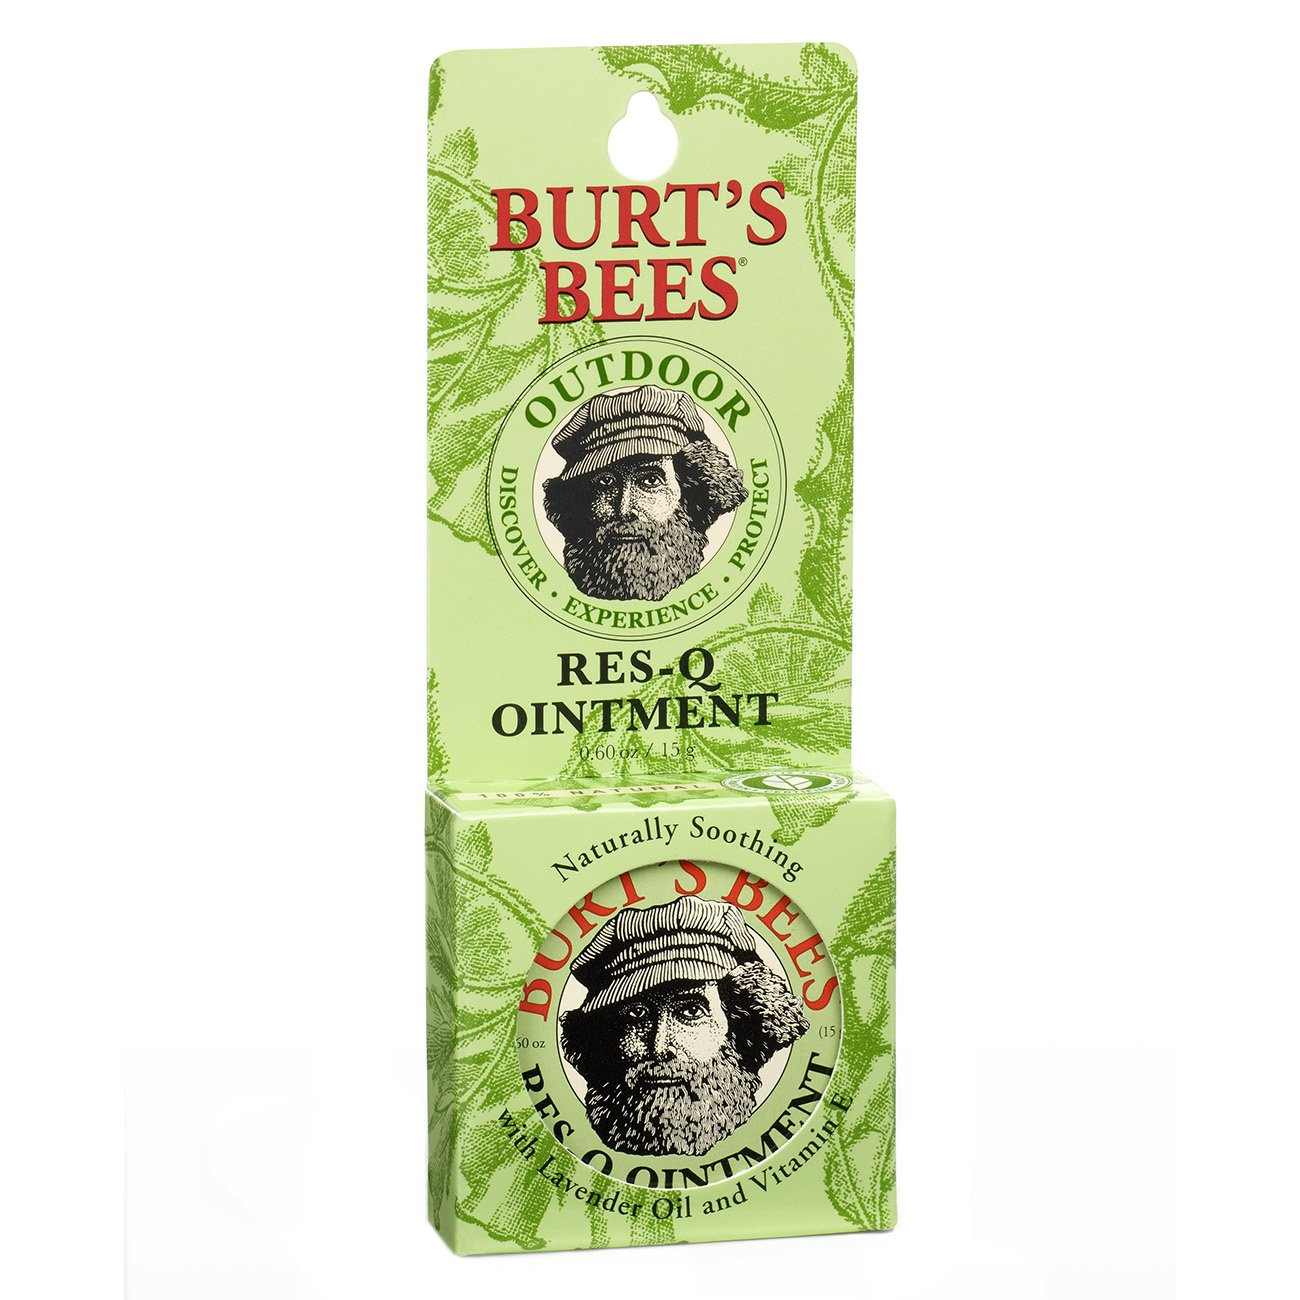 Burt's Bees 100% Natural Res-Q Ointment, Multipurpose Balm - 0.6 Ounce Tin (Pack of 6)